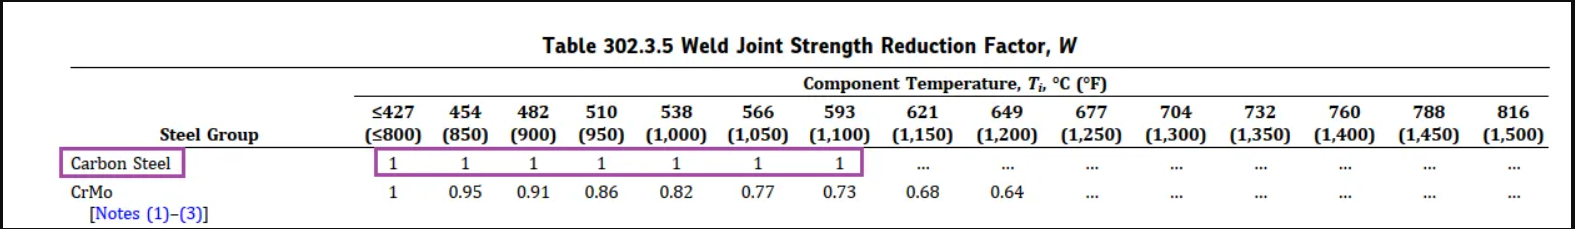 Weld-Joint-Strength-Reduction-Factor